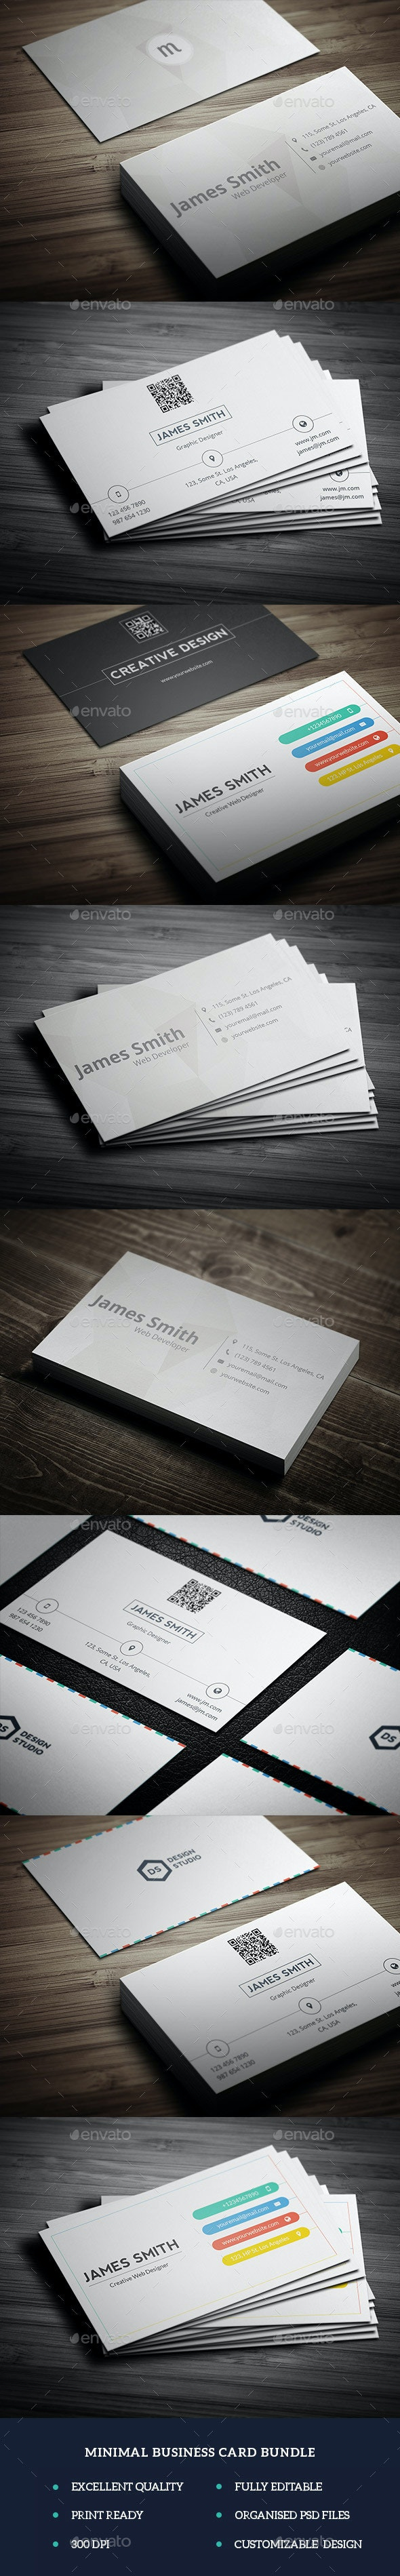 Minimal Business Card Bundle - Corporate Business Cards